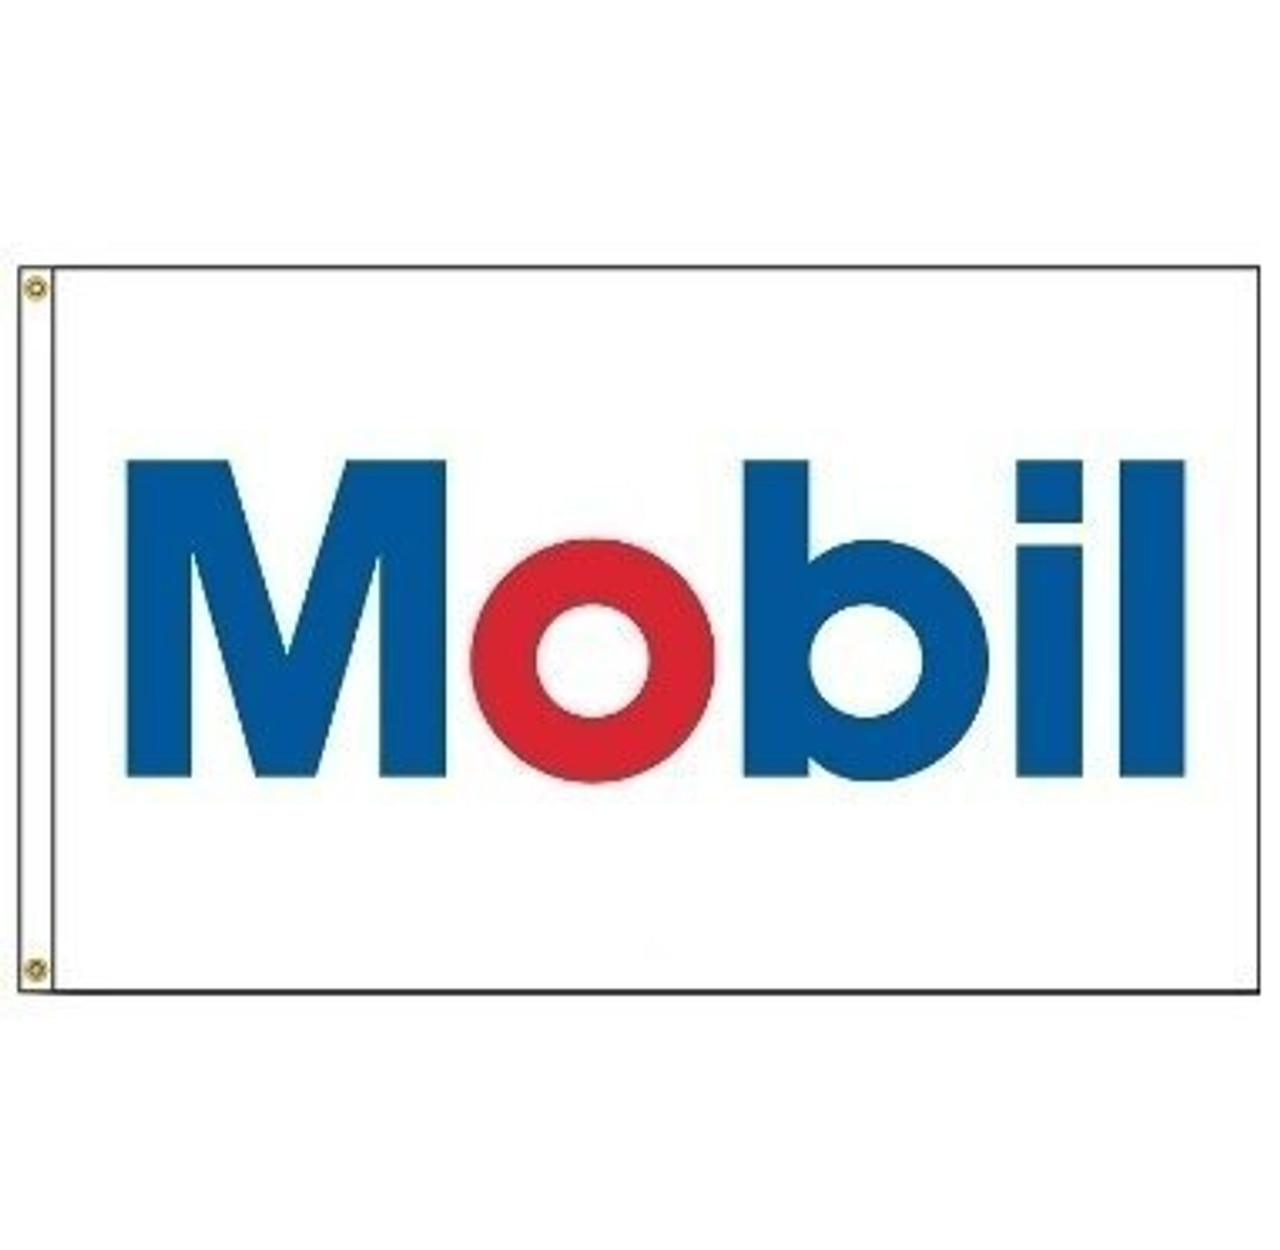 The image displays the Mobil Oil Corporation flag. The flag has a white background with a the text 'Mobil' written on the center. The letters are in blue with the exception of the letter 'O' which is in red.